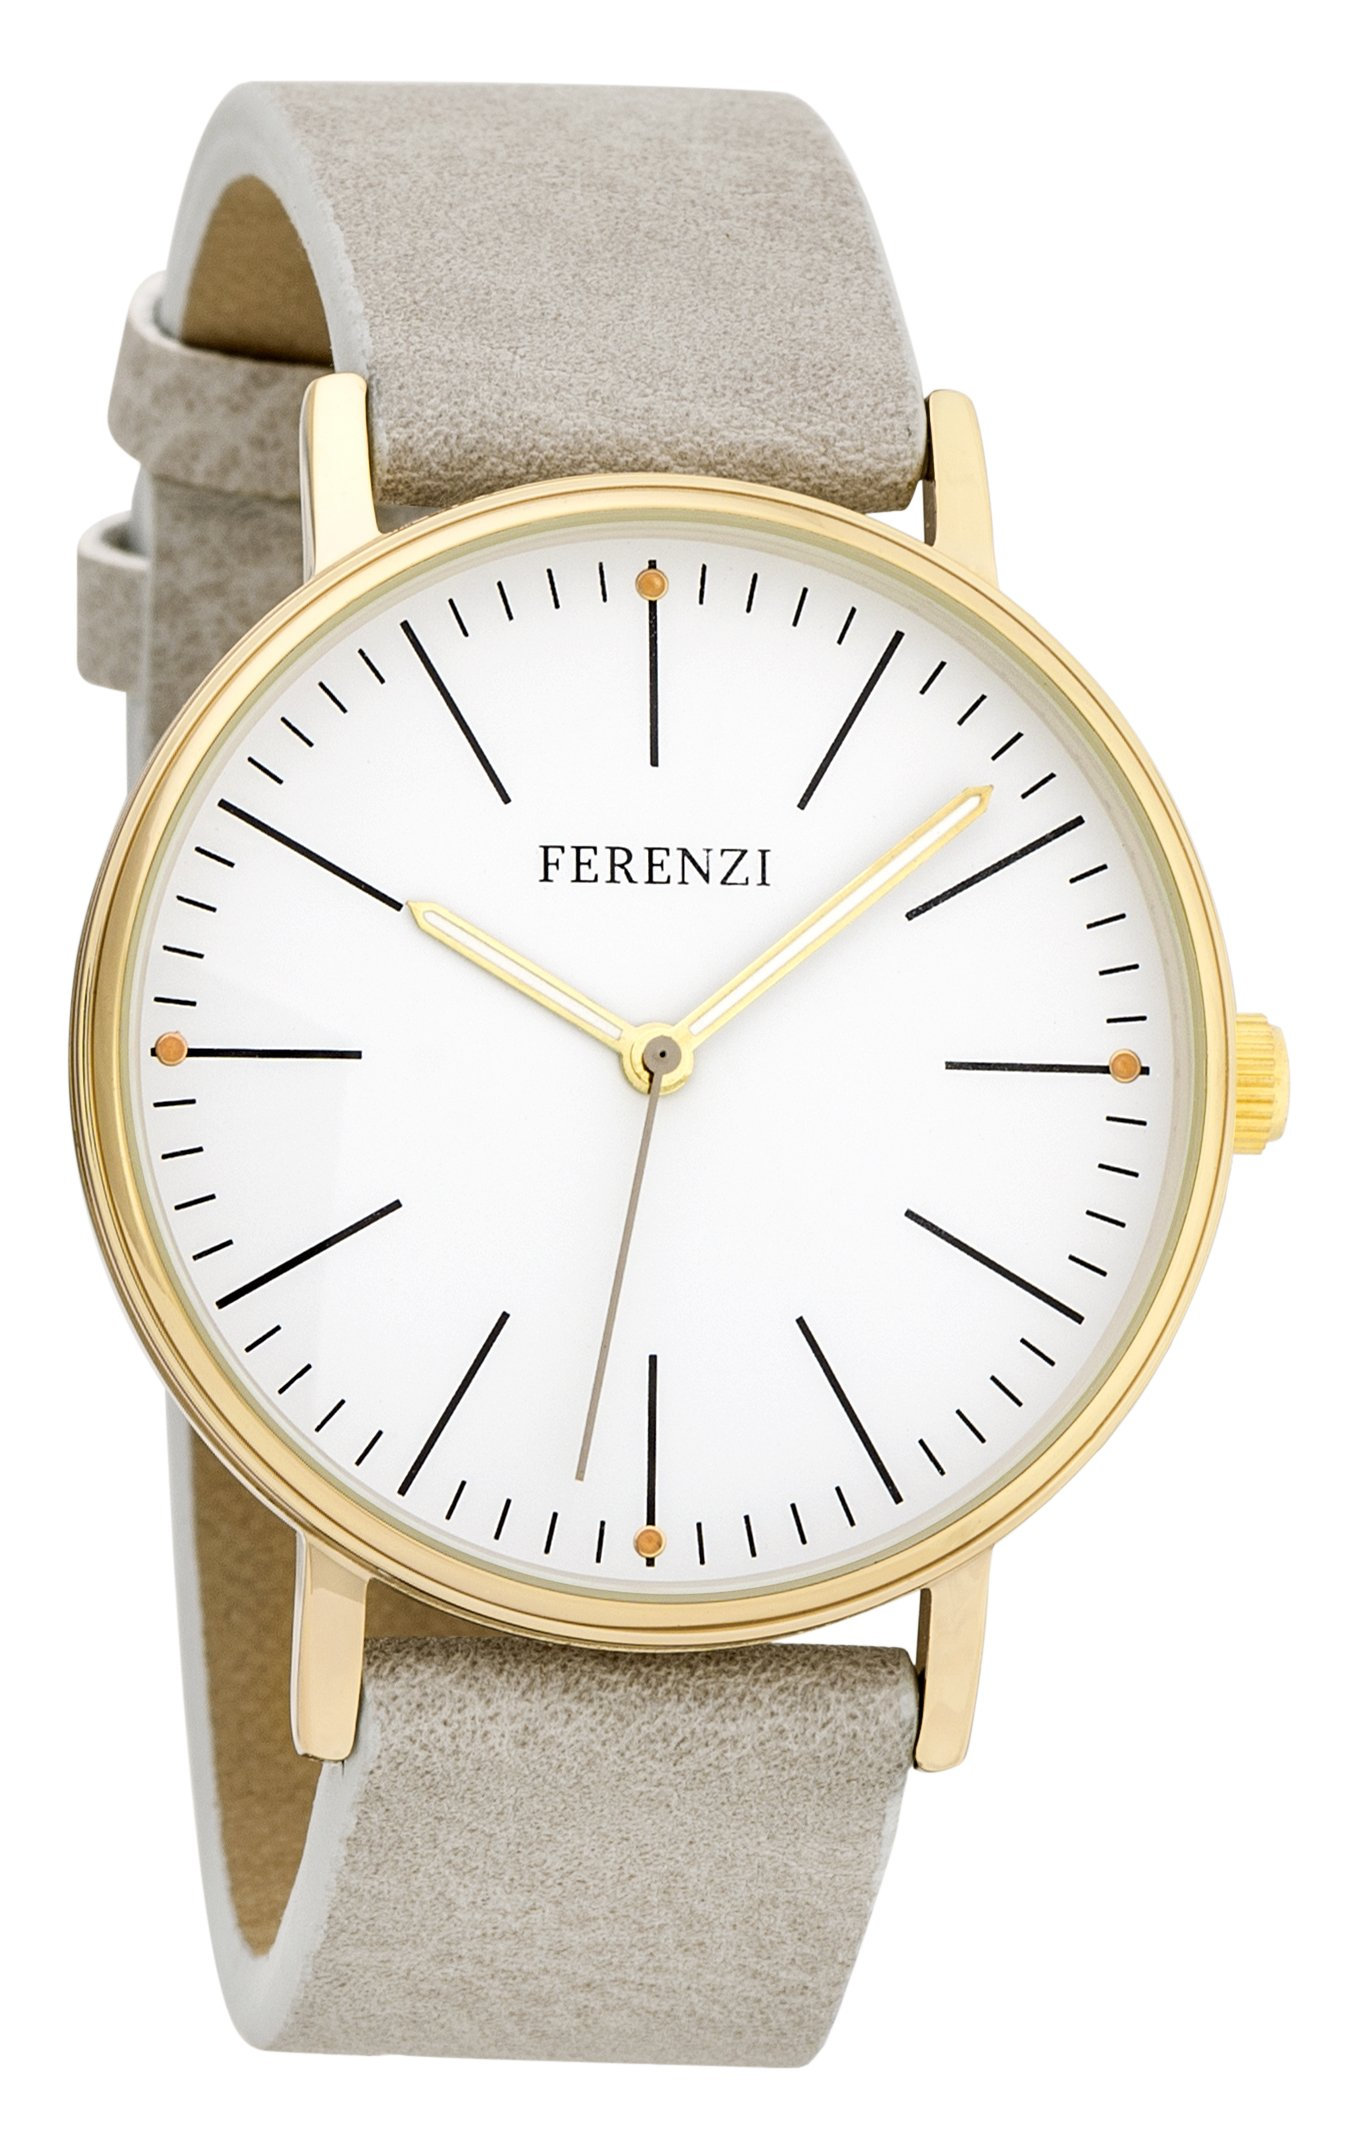 Women's Watches by Ferenzi - Minimalist Gold And Grey PU Leather Watch - Make Every Second Count - FZ17202